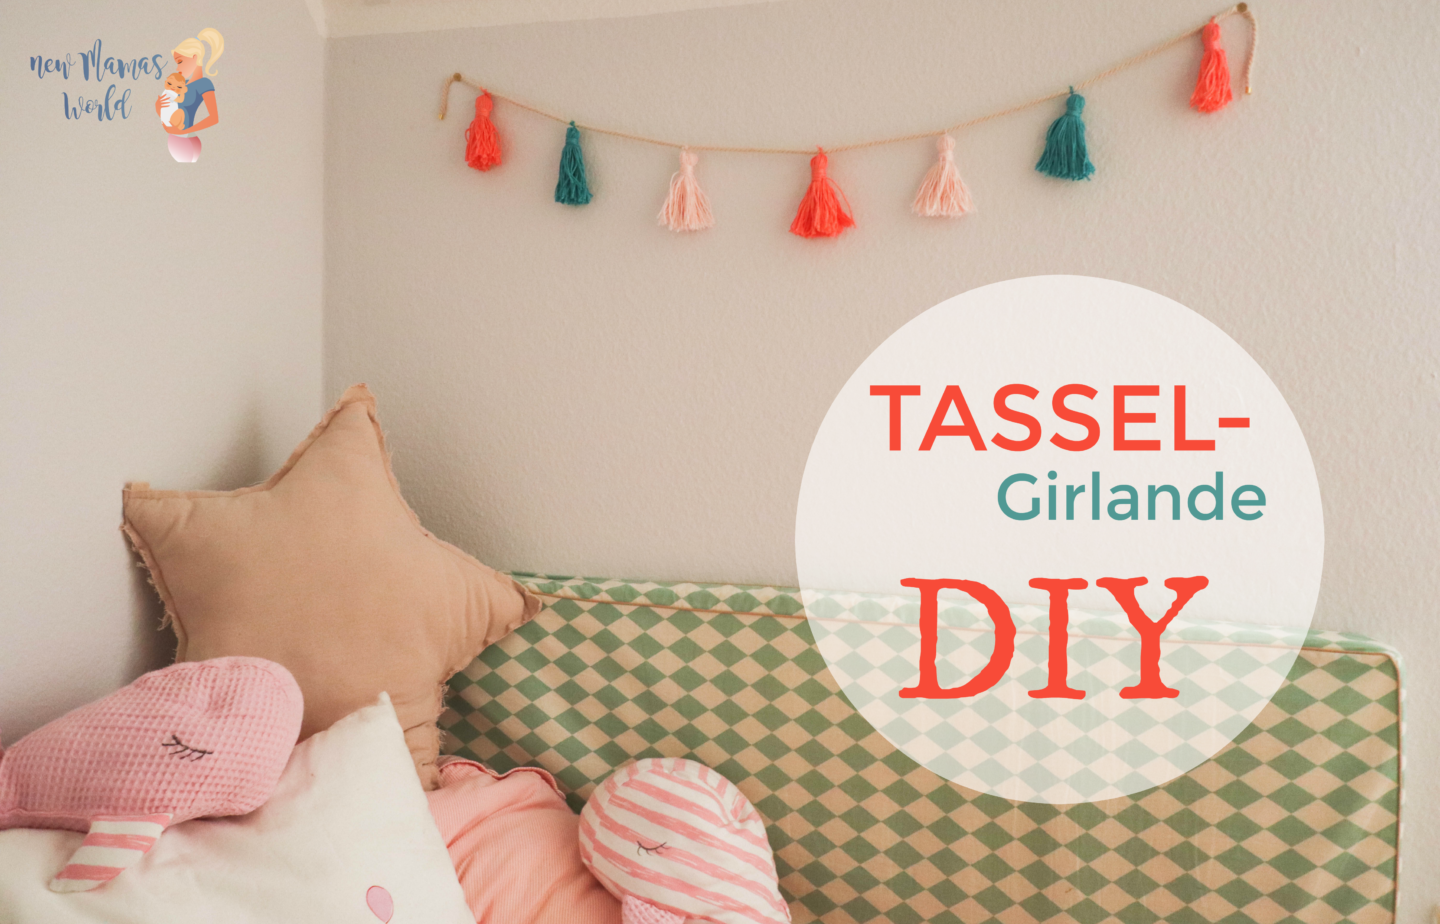 Tassel DIY Girlande